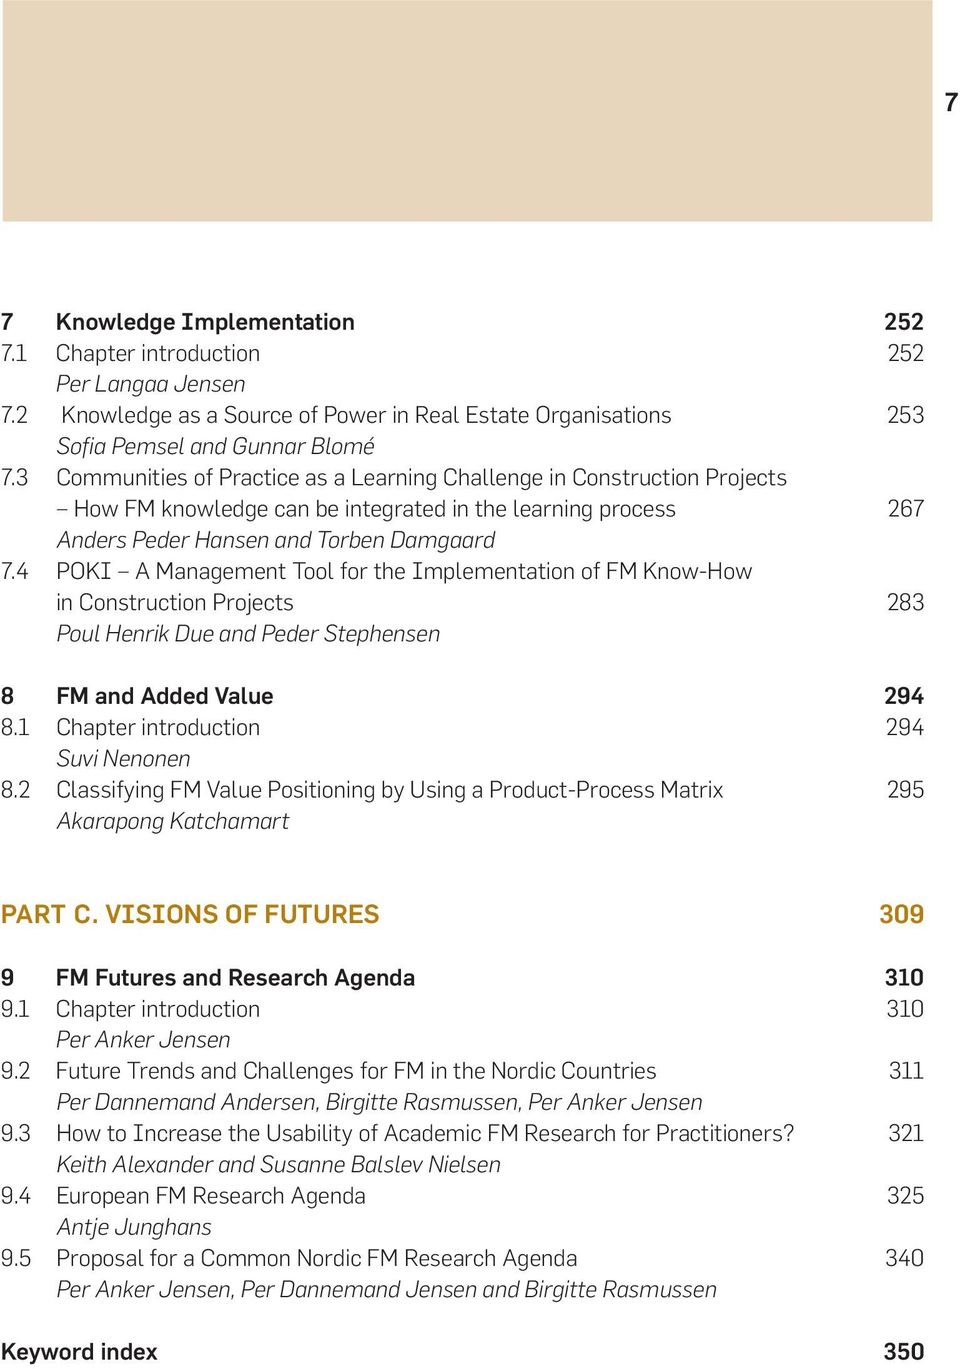 4 POKI A Management Tool for the Implementation of FM Know-How in Construction Projects 283 Poul Henrik Due and Peder Stephensen 8 FM and Added Value 294 8.1 Chapter introduction 294 Suvi Nenonen 8.